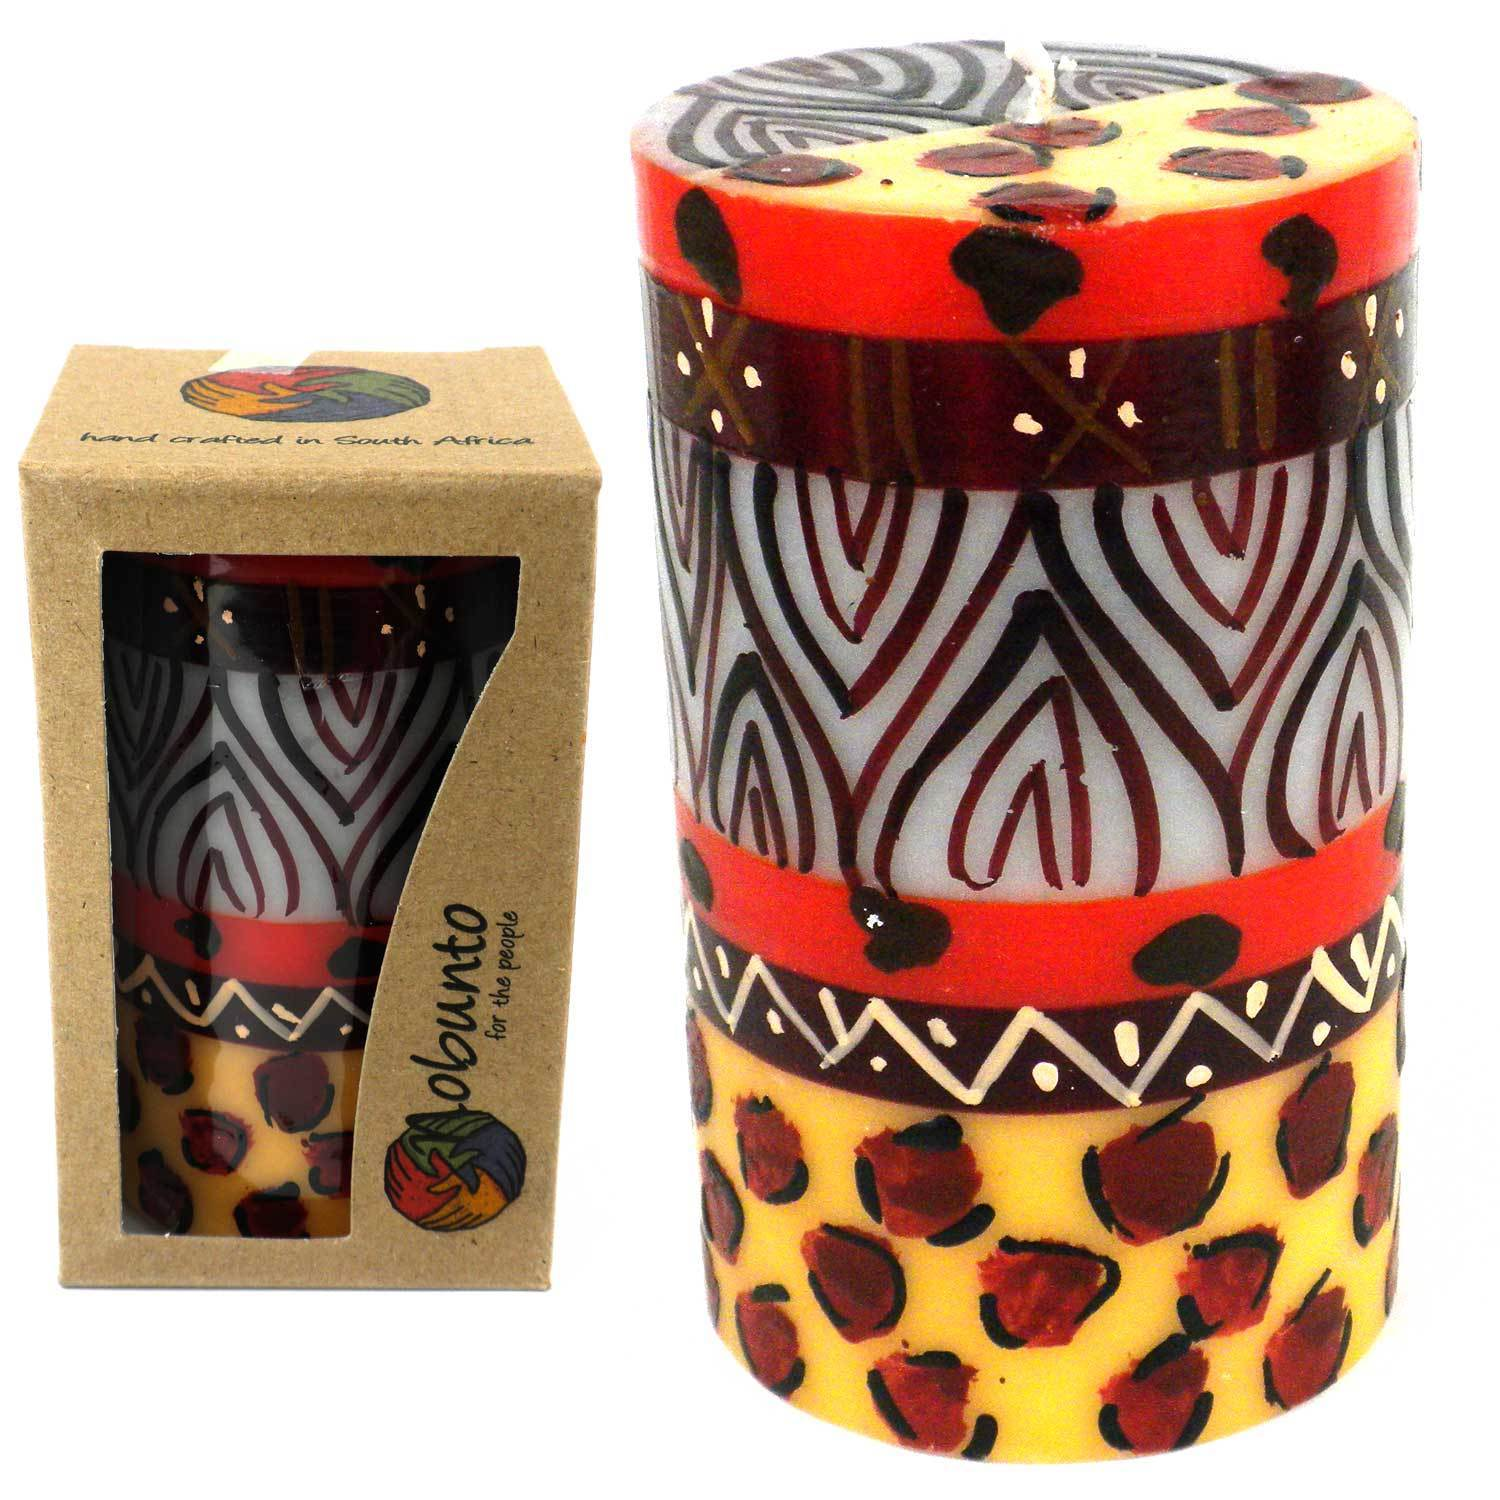 Global Crafts Single Boxed Hand-painted Pillar Candle with Uzima Design  , Handmade in South Africa